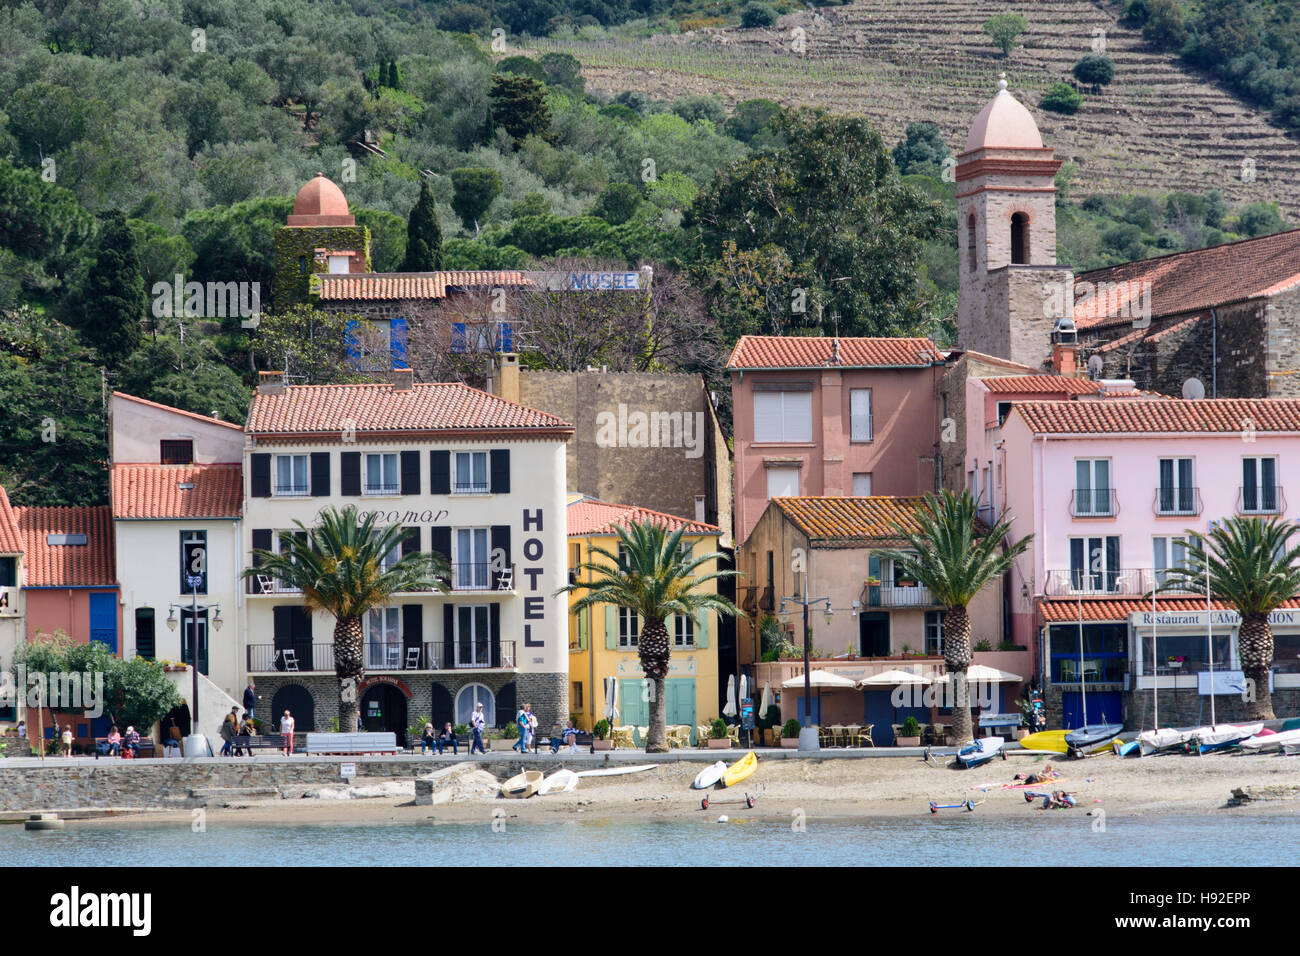 Hotels along the bay of Collioure. France - Stock Image